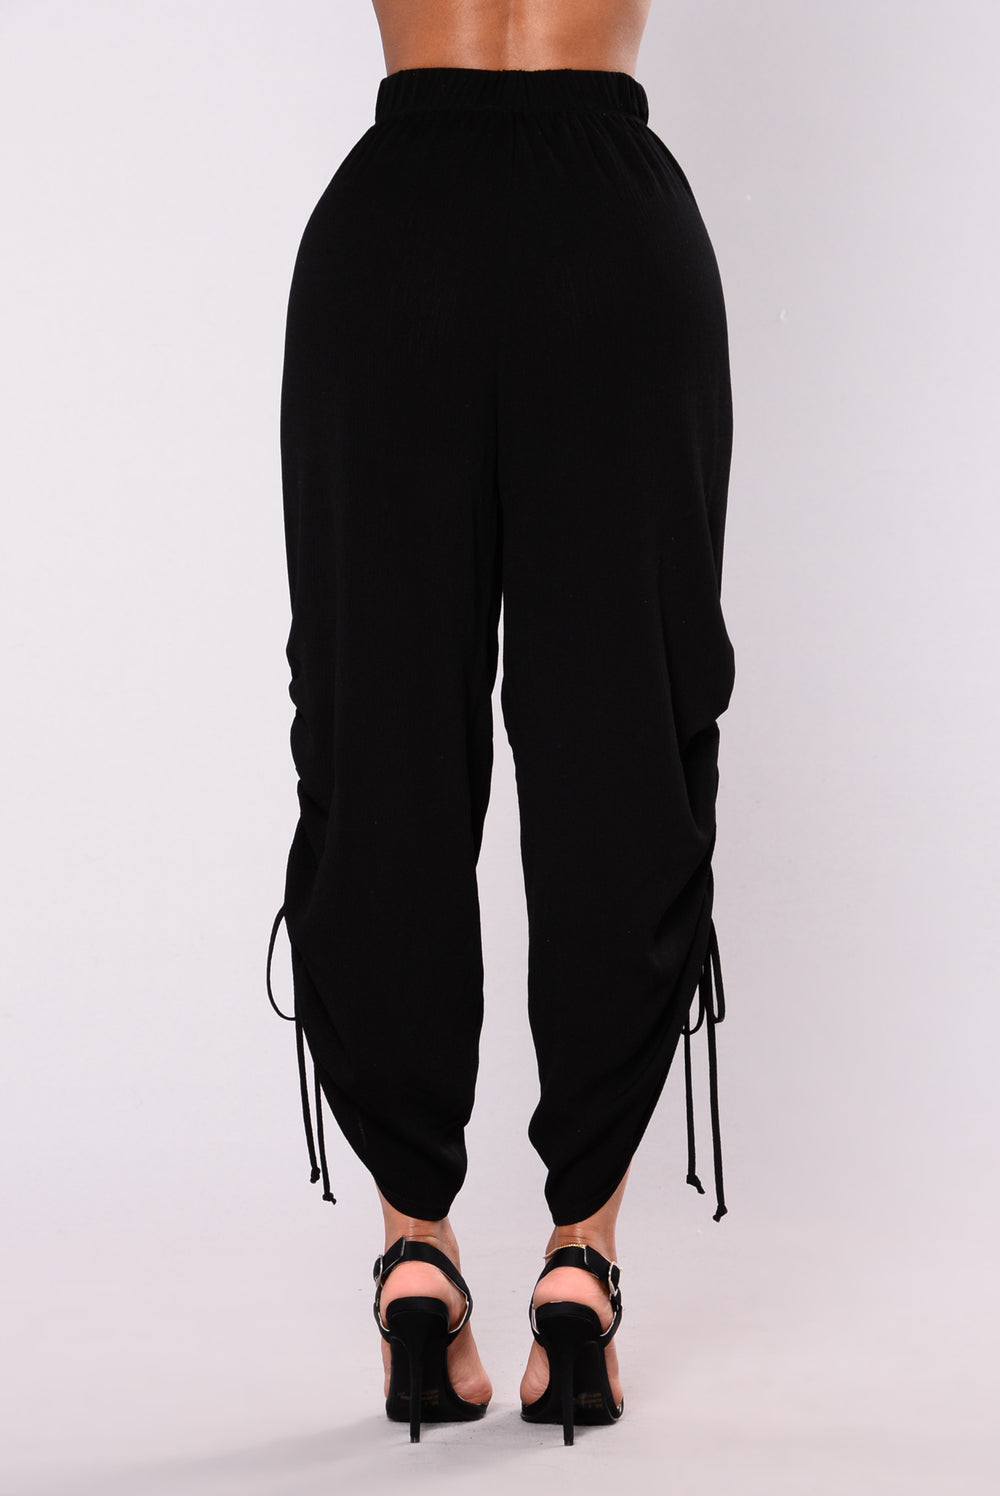 Wendy Woven Pants - Black